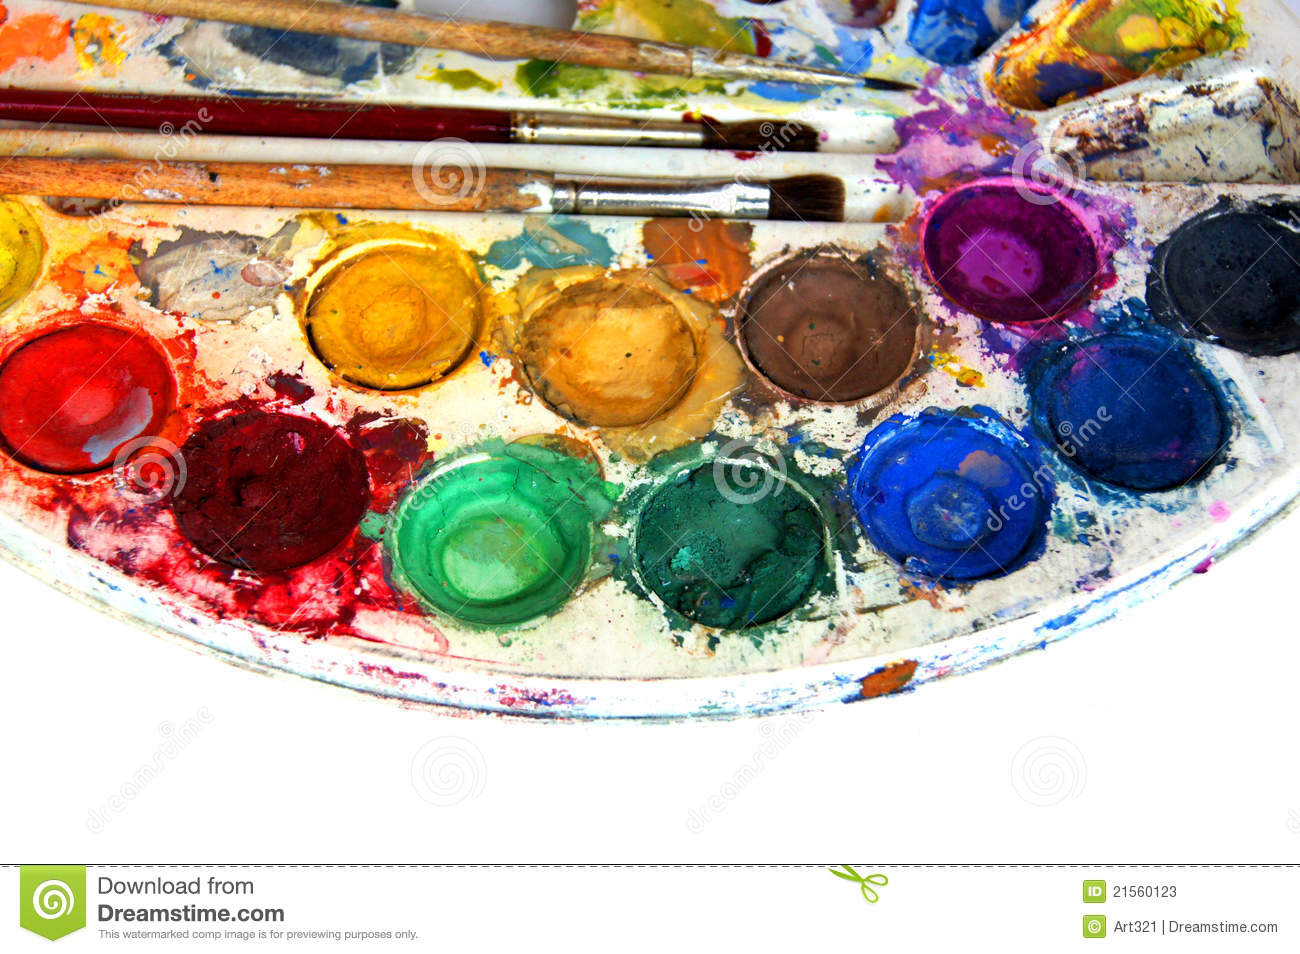 Free illustration watercolor pigment color free image - Royalty Free Stock Photo Download Water Color Paint Box